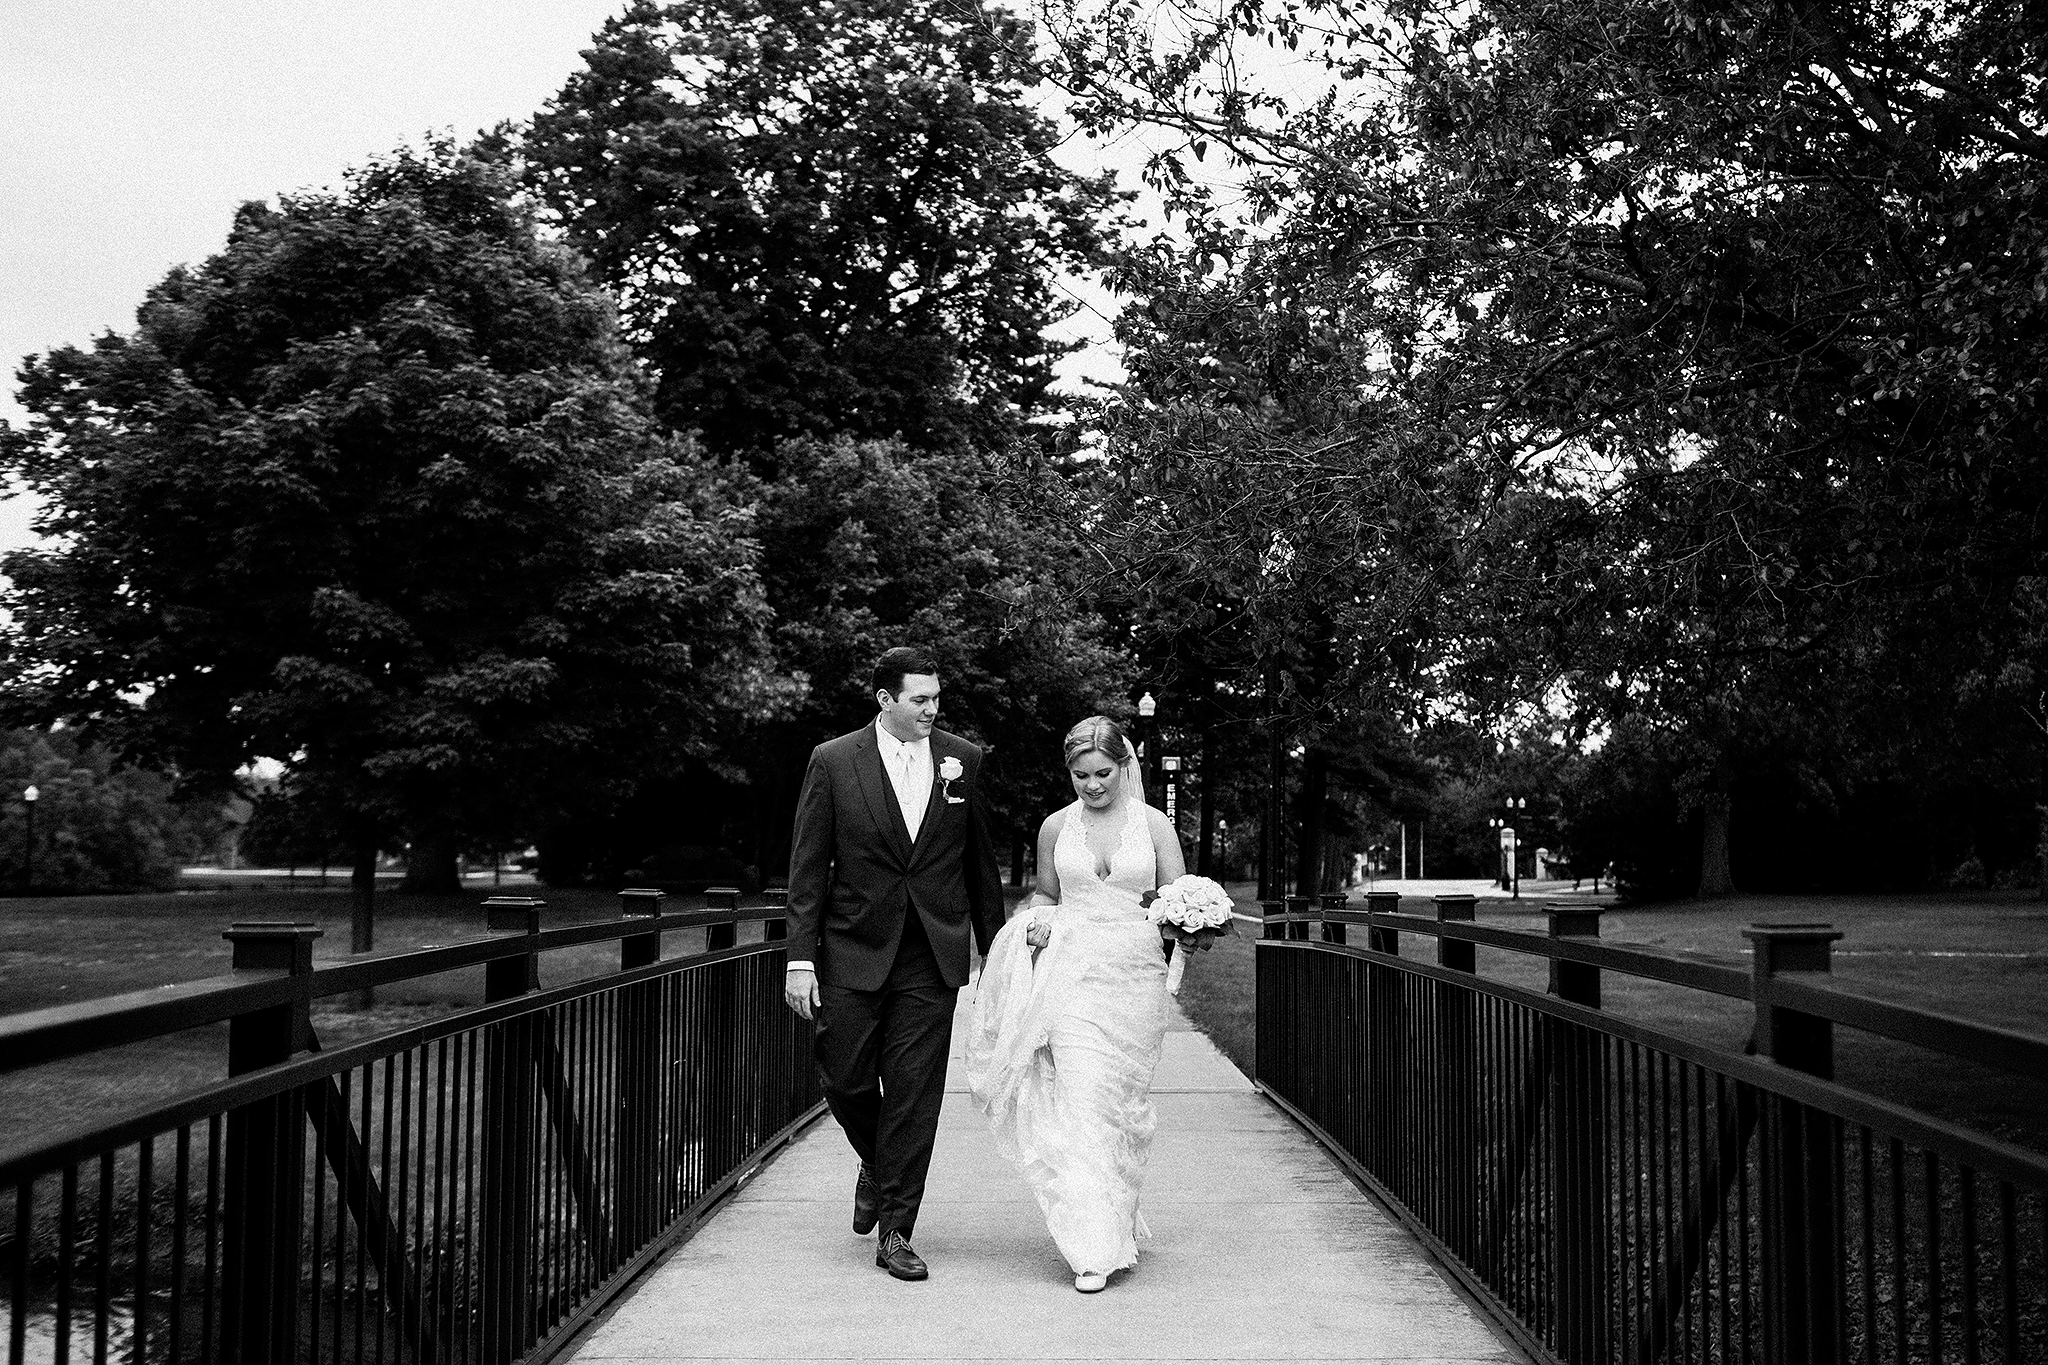 black and white portrait of bride and groom walking | dekalb IL wedding photographer | chrissy deming